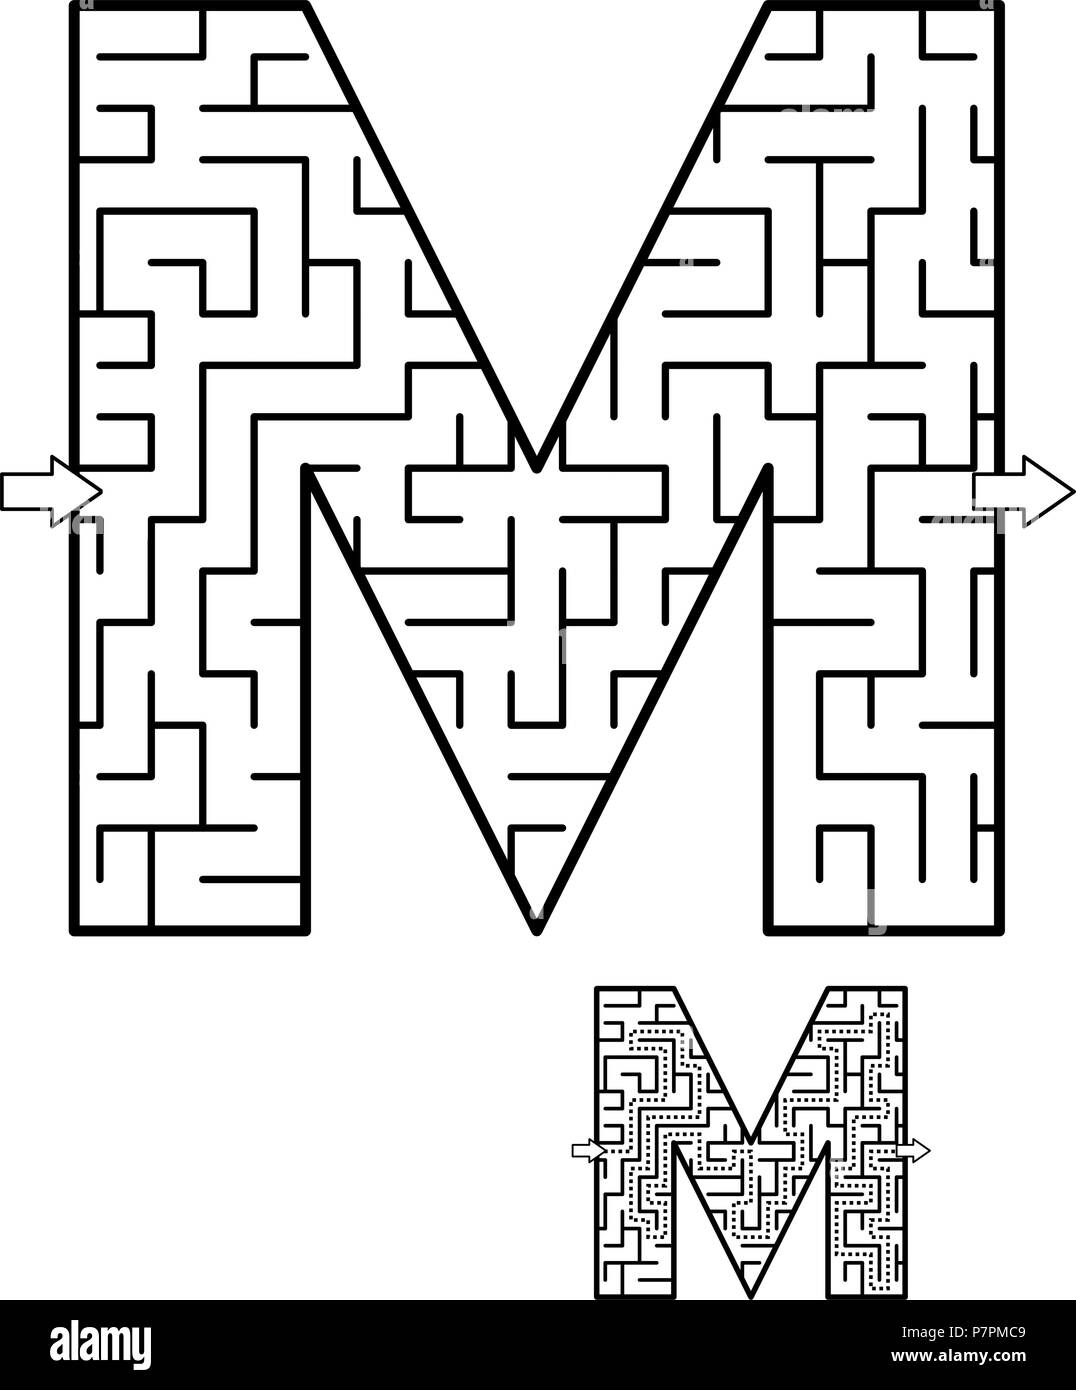 Kids Letter Mazes Printables - Get Coloring Pages | 1390x1076